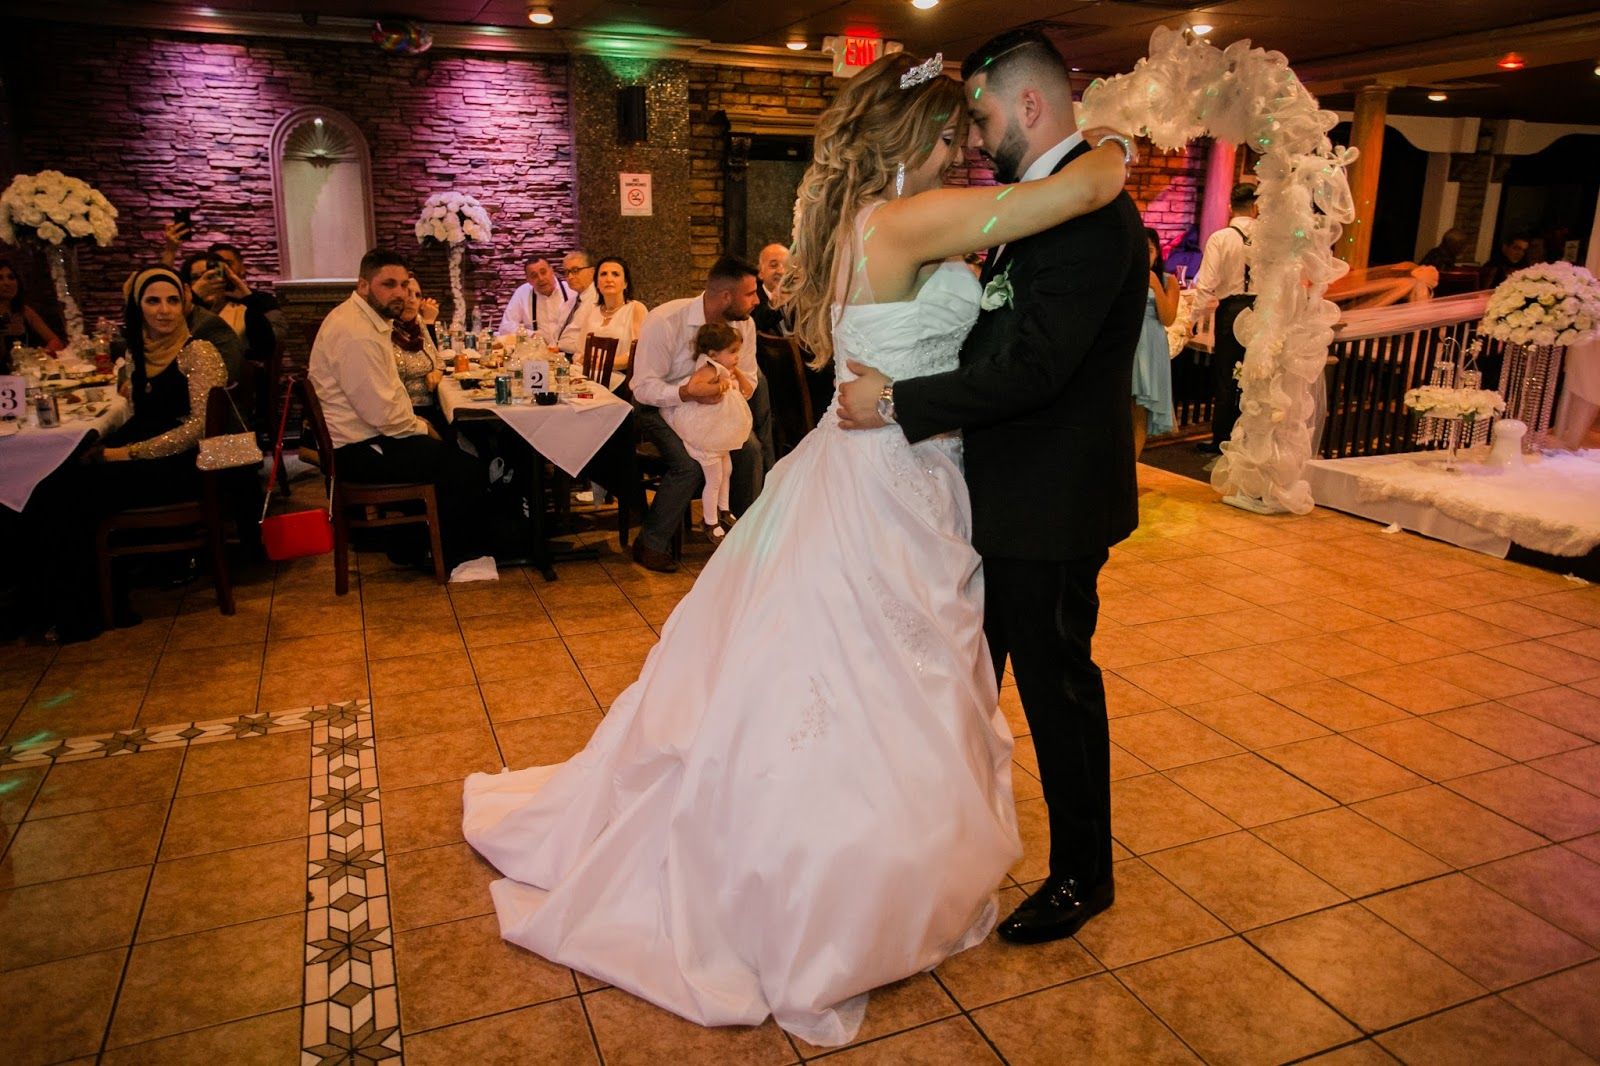 Couple Dancing together